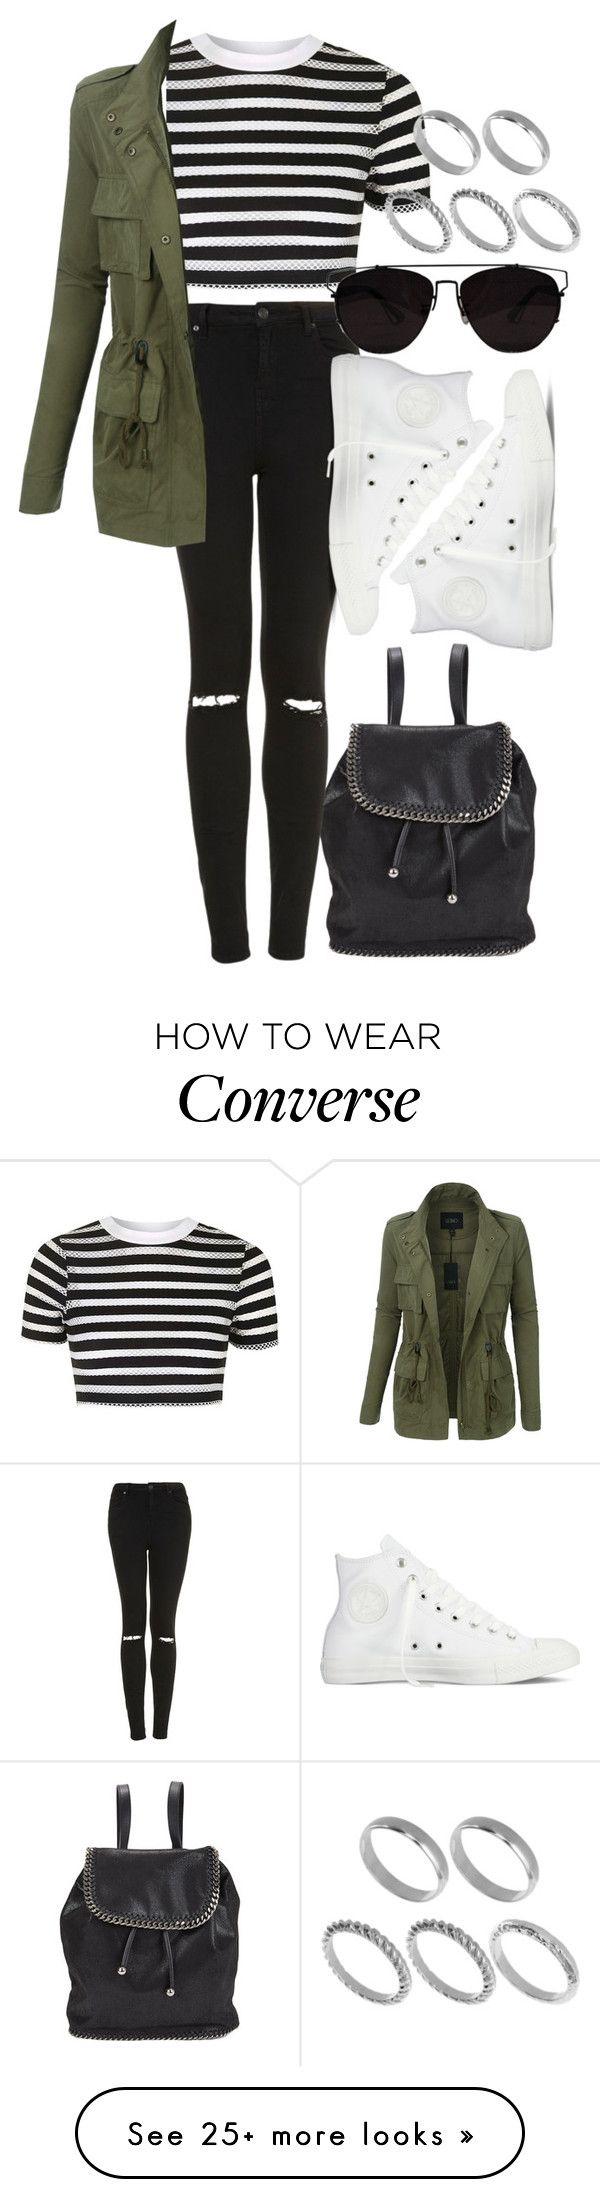 """Untitled #104"" by voiceforfashion on Polyvore featuring STELLA McCARTNEY, Topshop, LE3NO, ASOS and Converse"